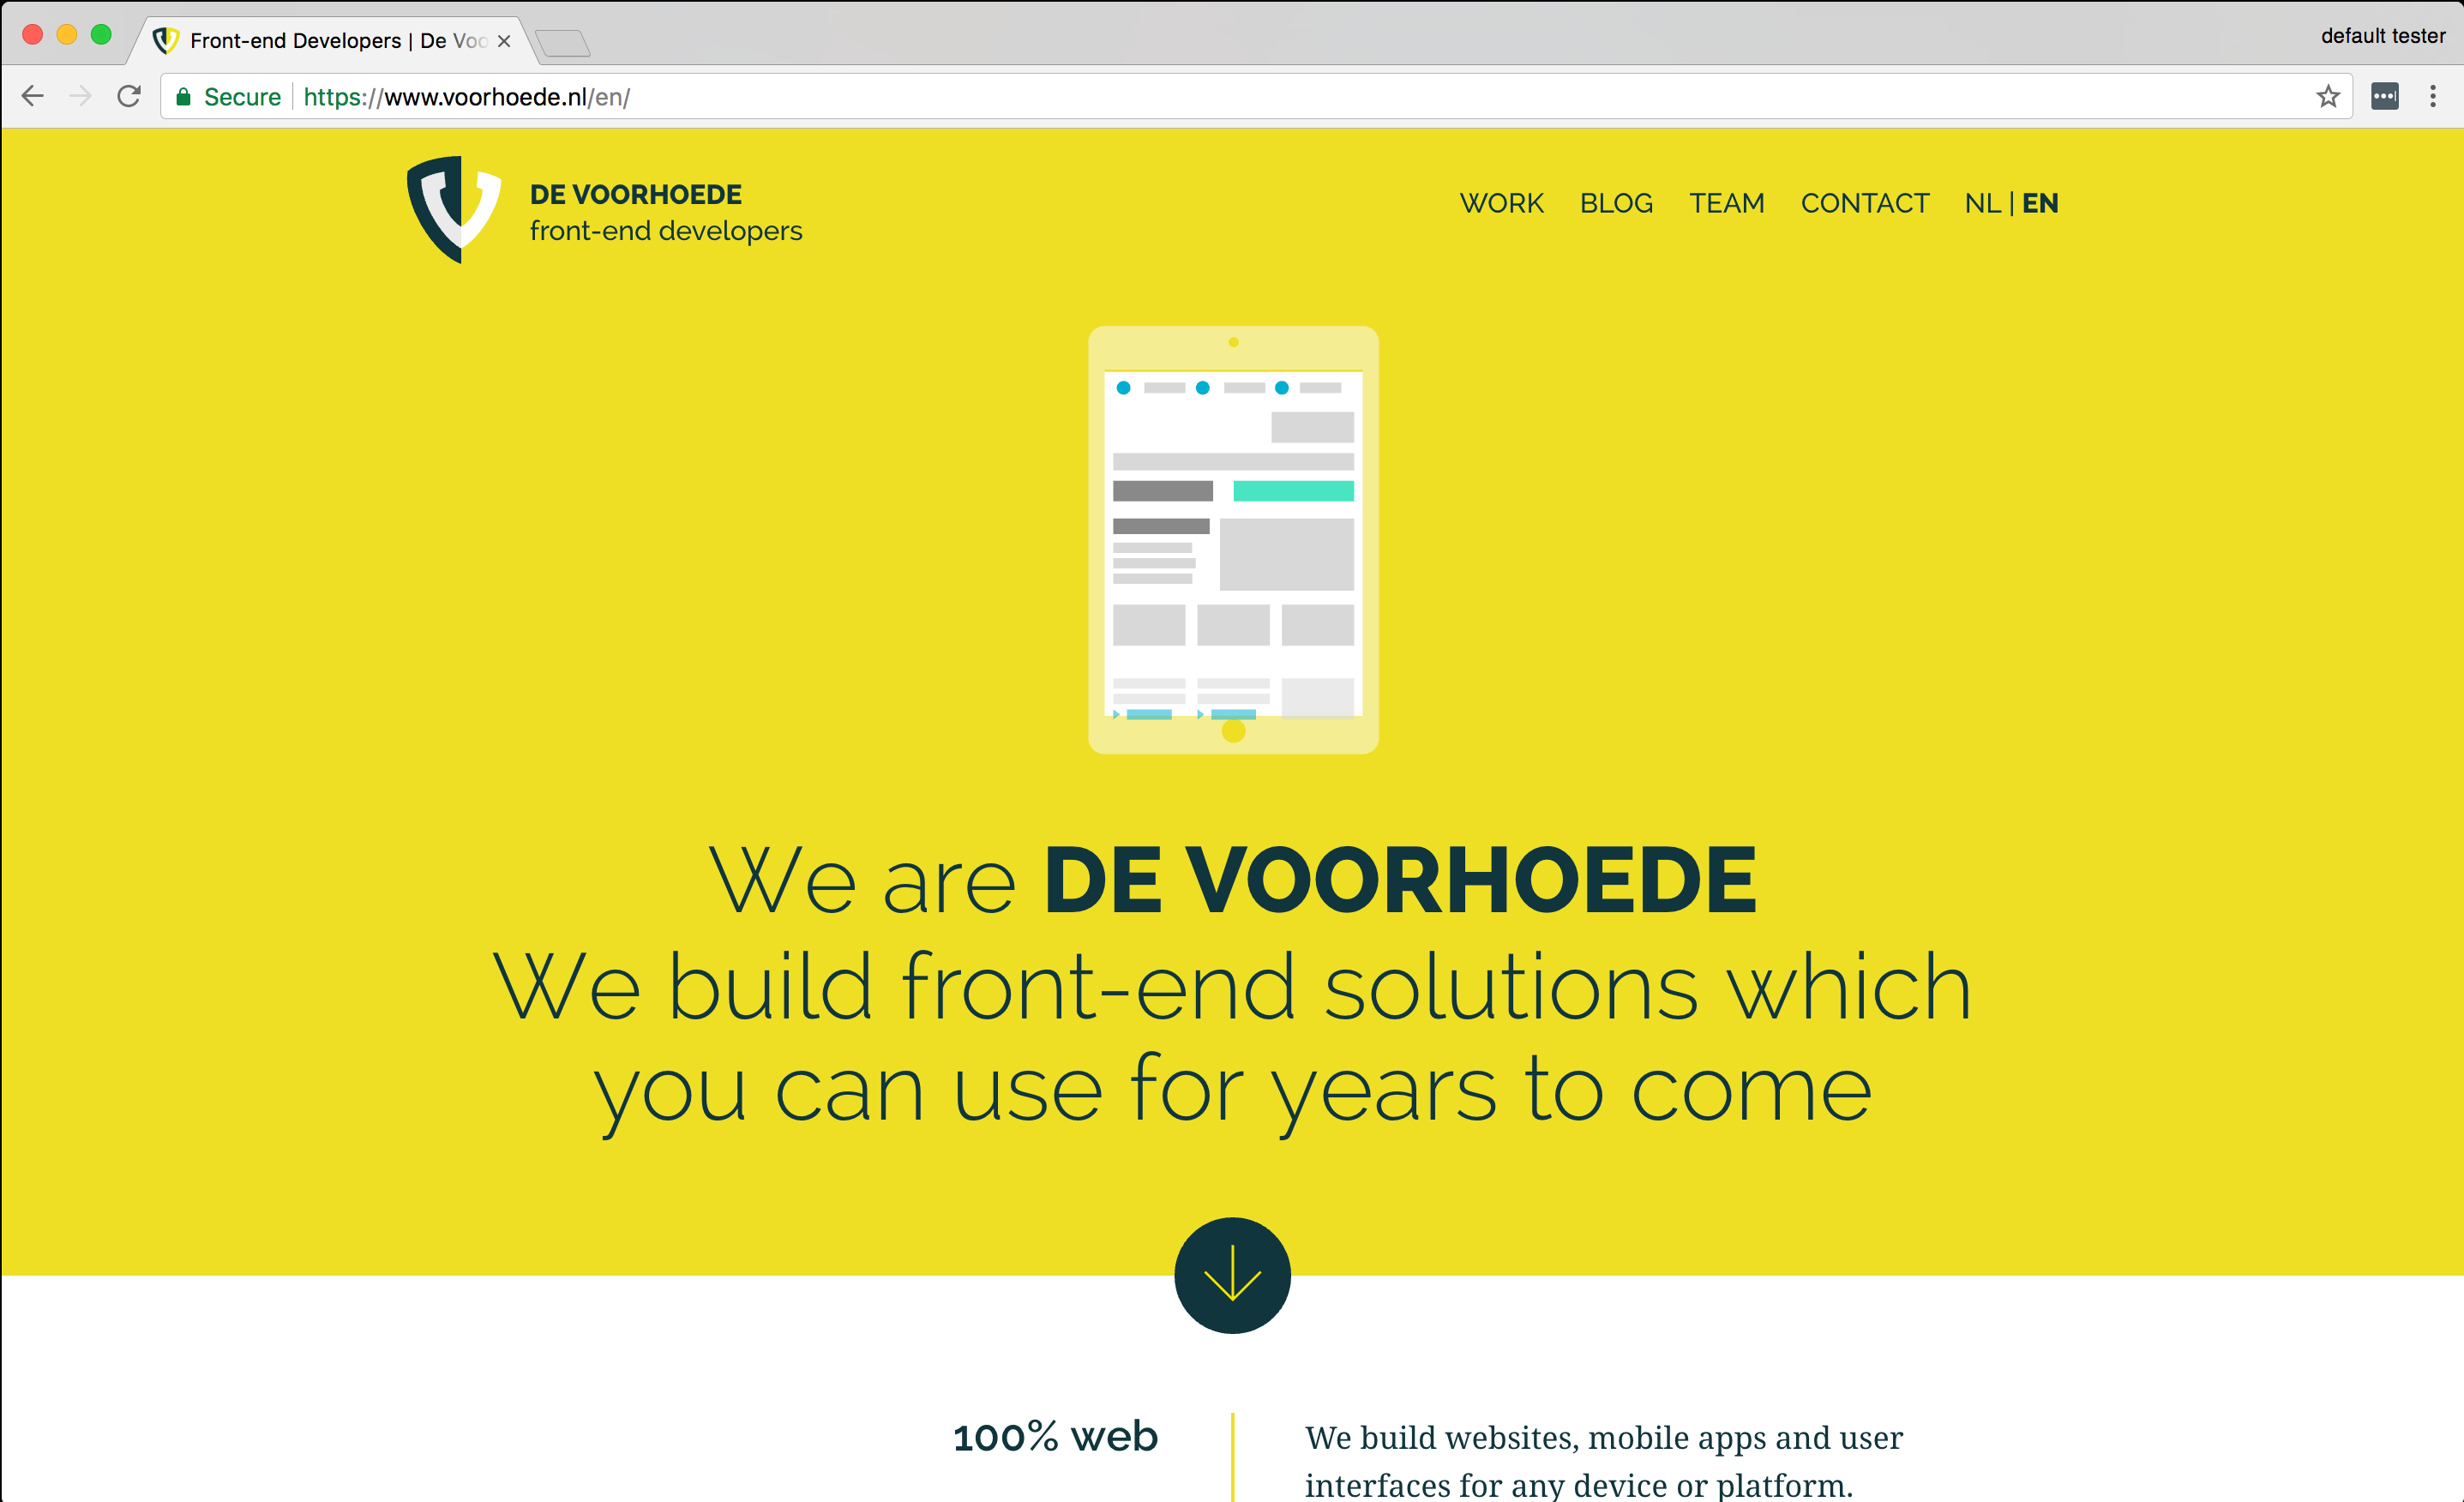 Our website on voorhoede.nl